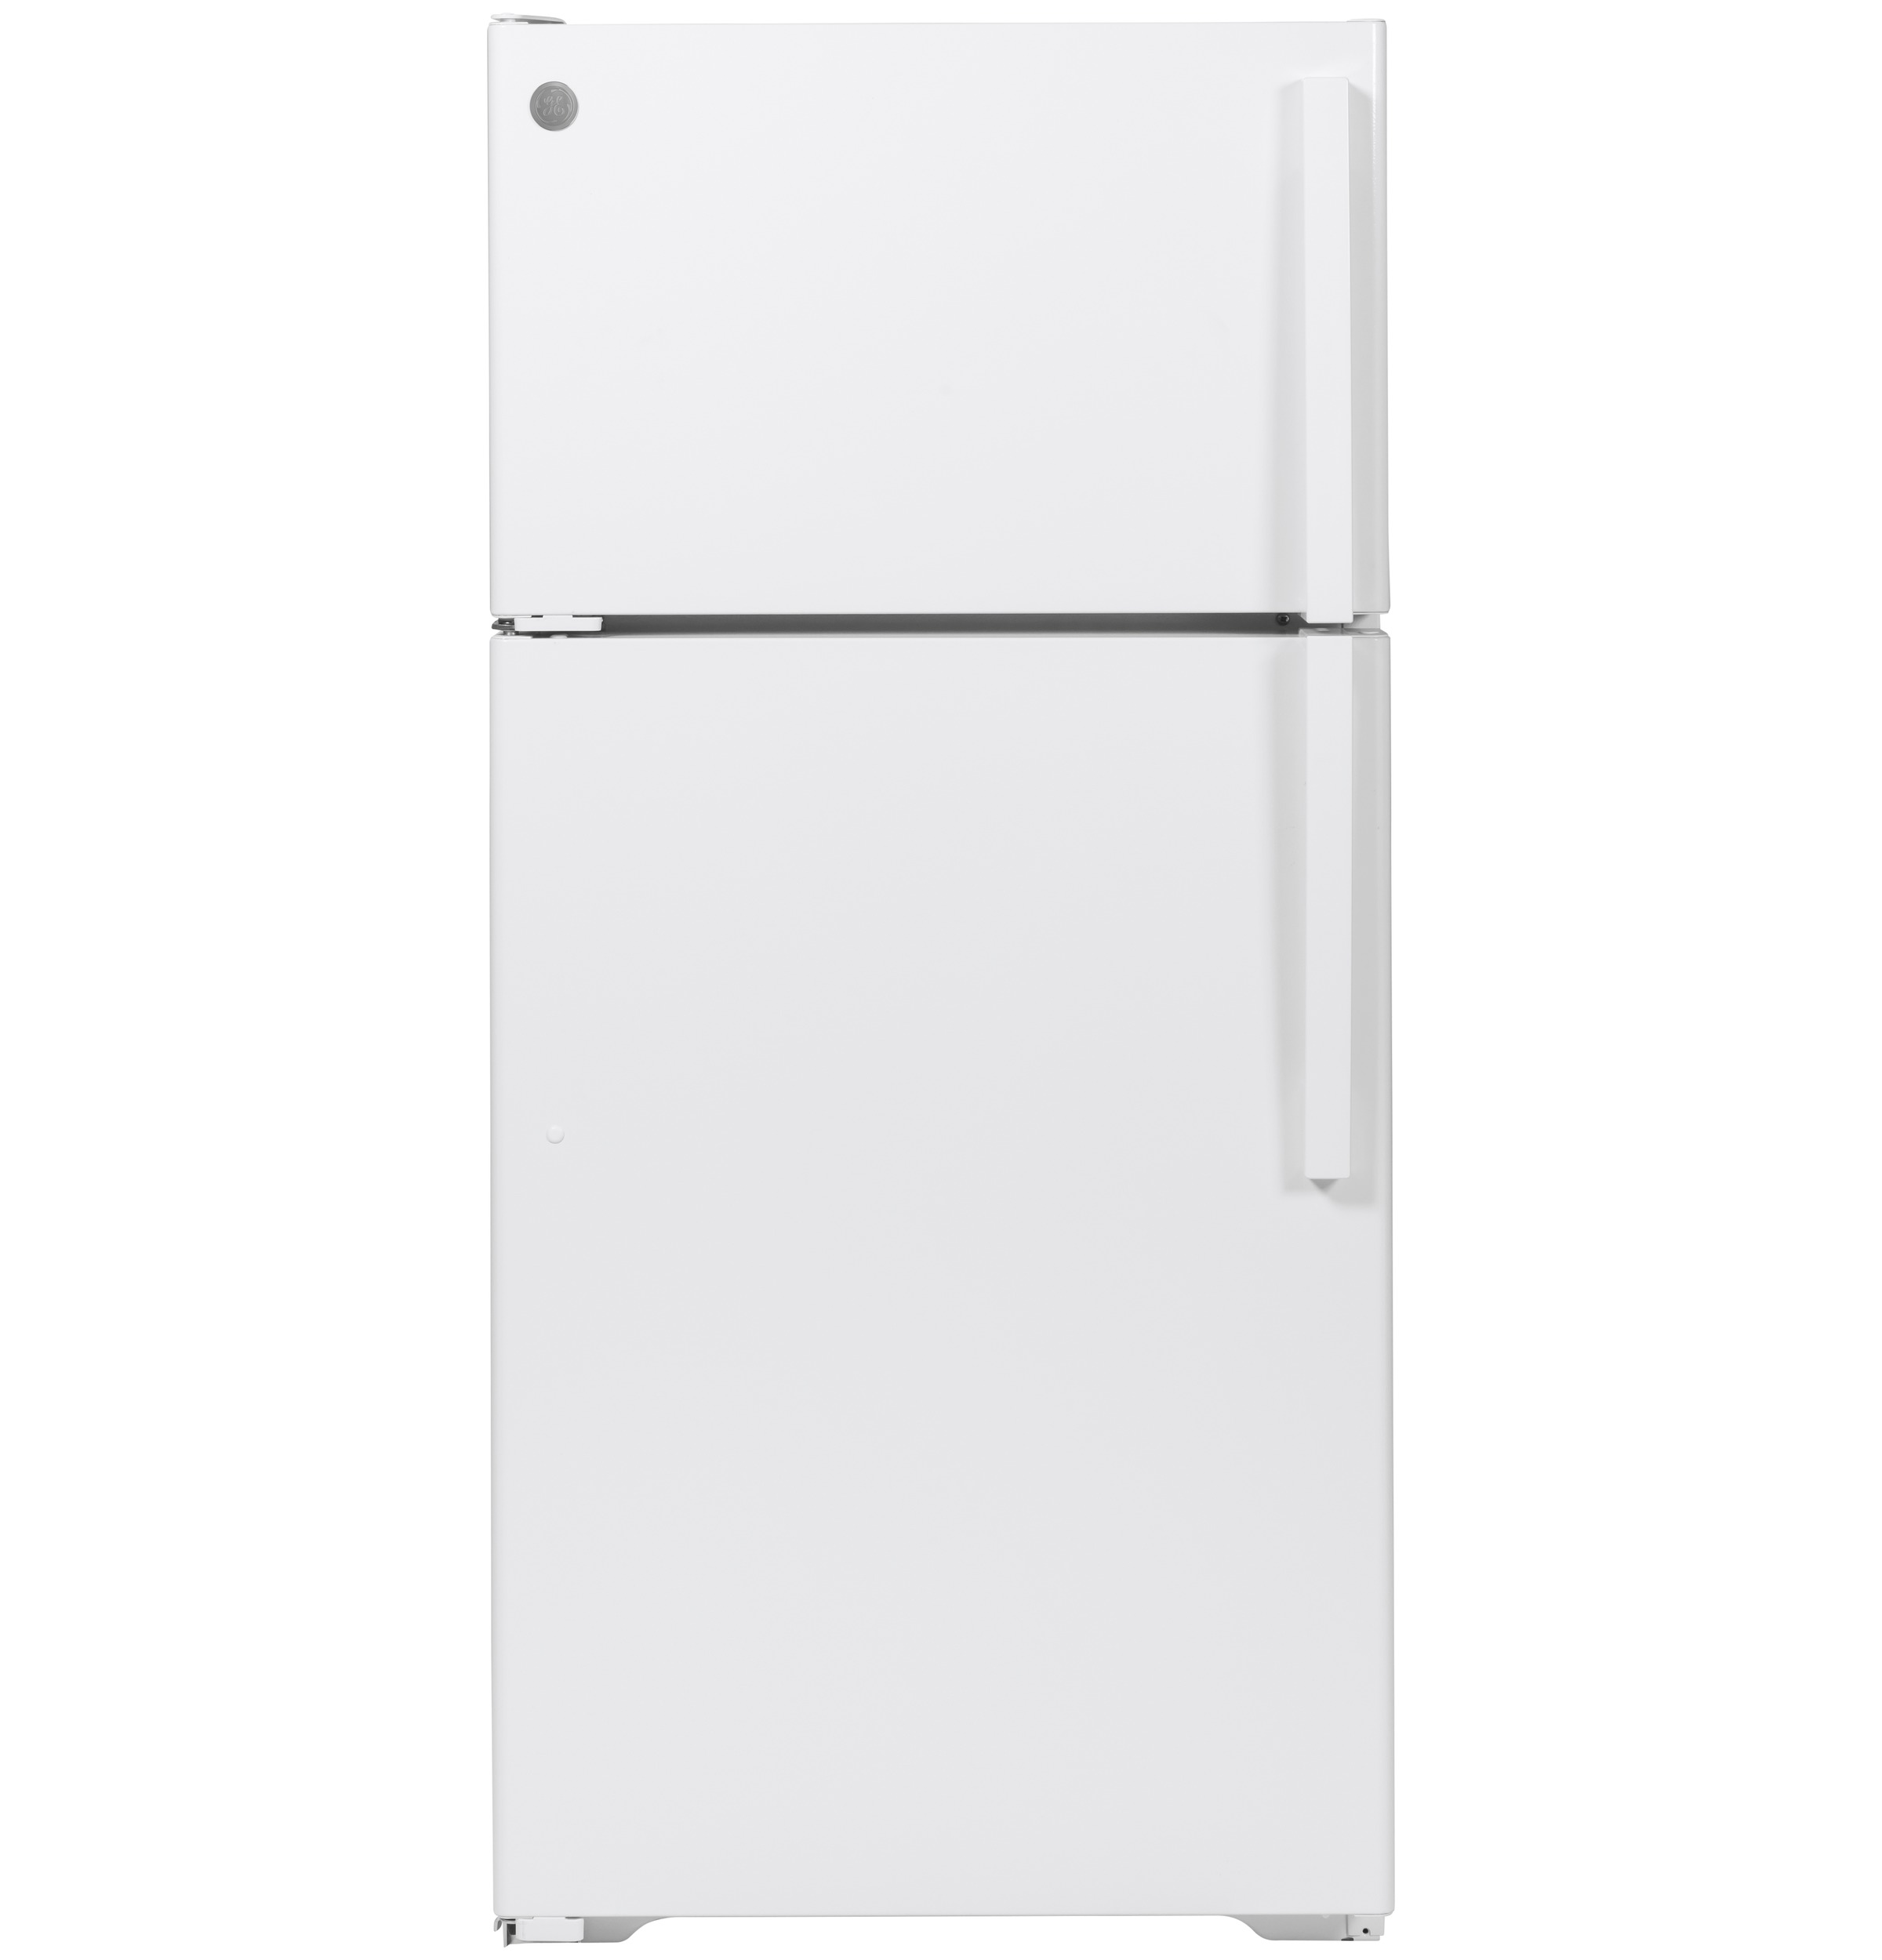 Model: GTE16DTNLWW | GE GE® ENERGY STAR® 15.6 Cu. Ft. Top-Freezer Refrigerator